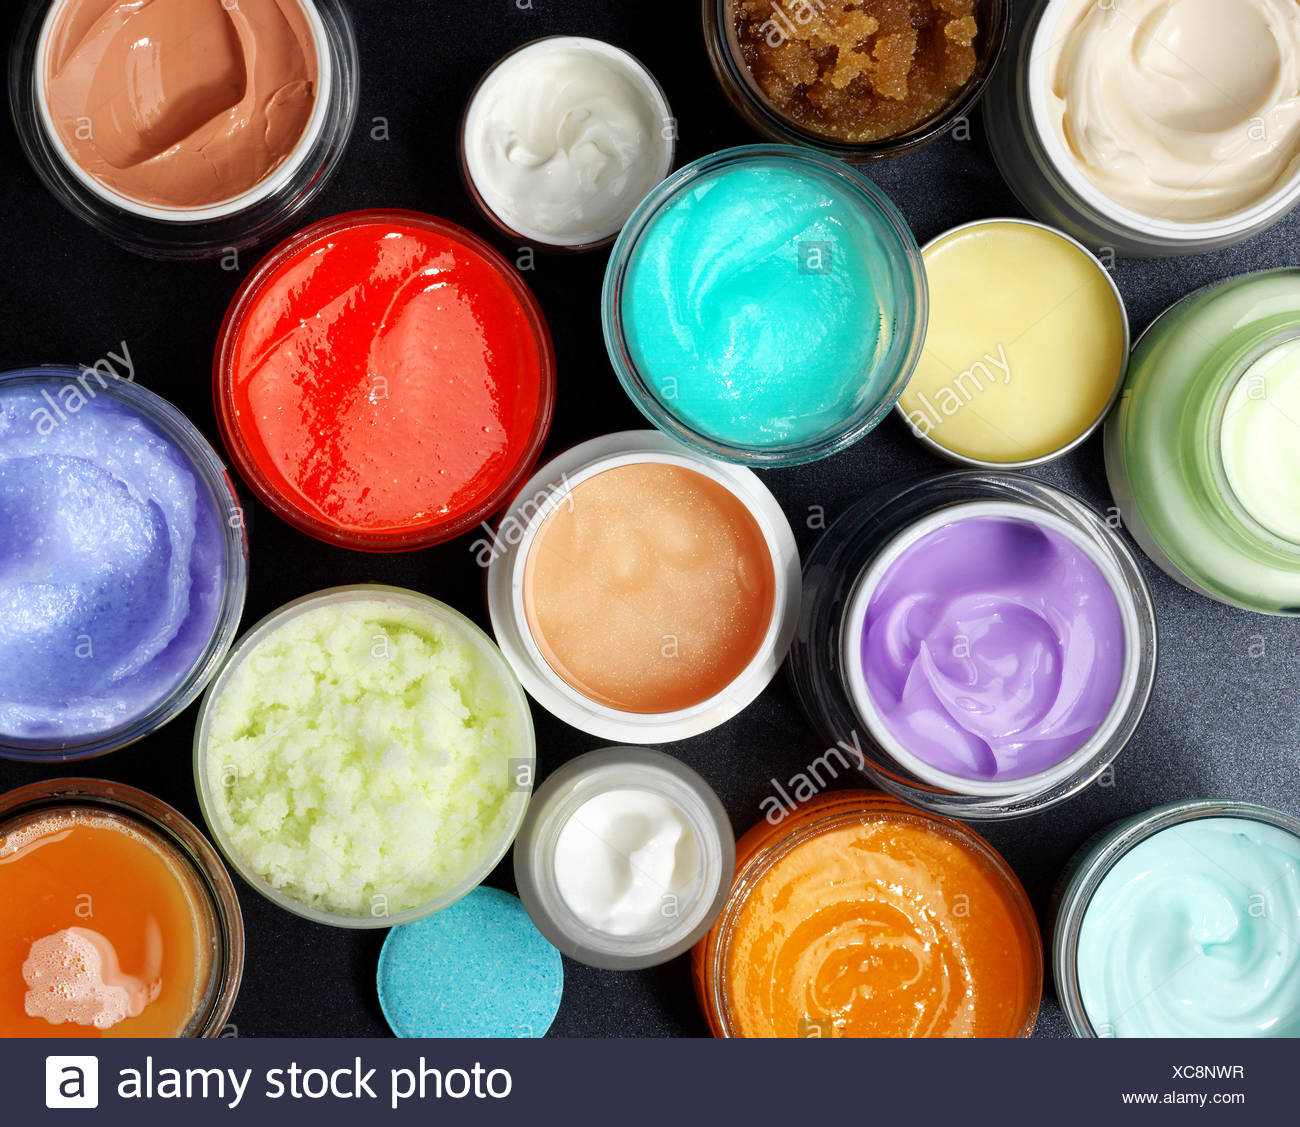 Colorful scrubs and creams - Stock Image